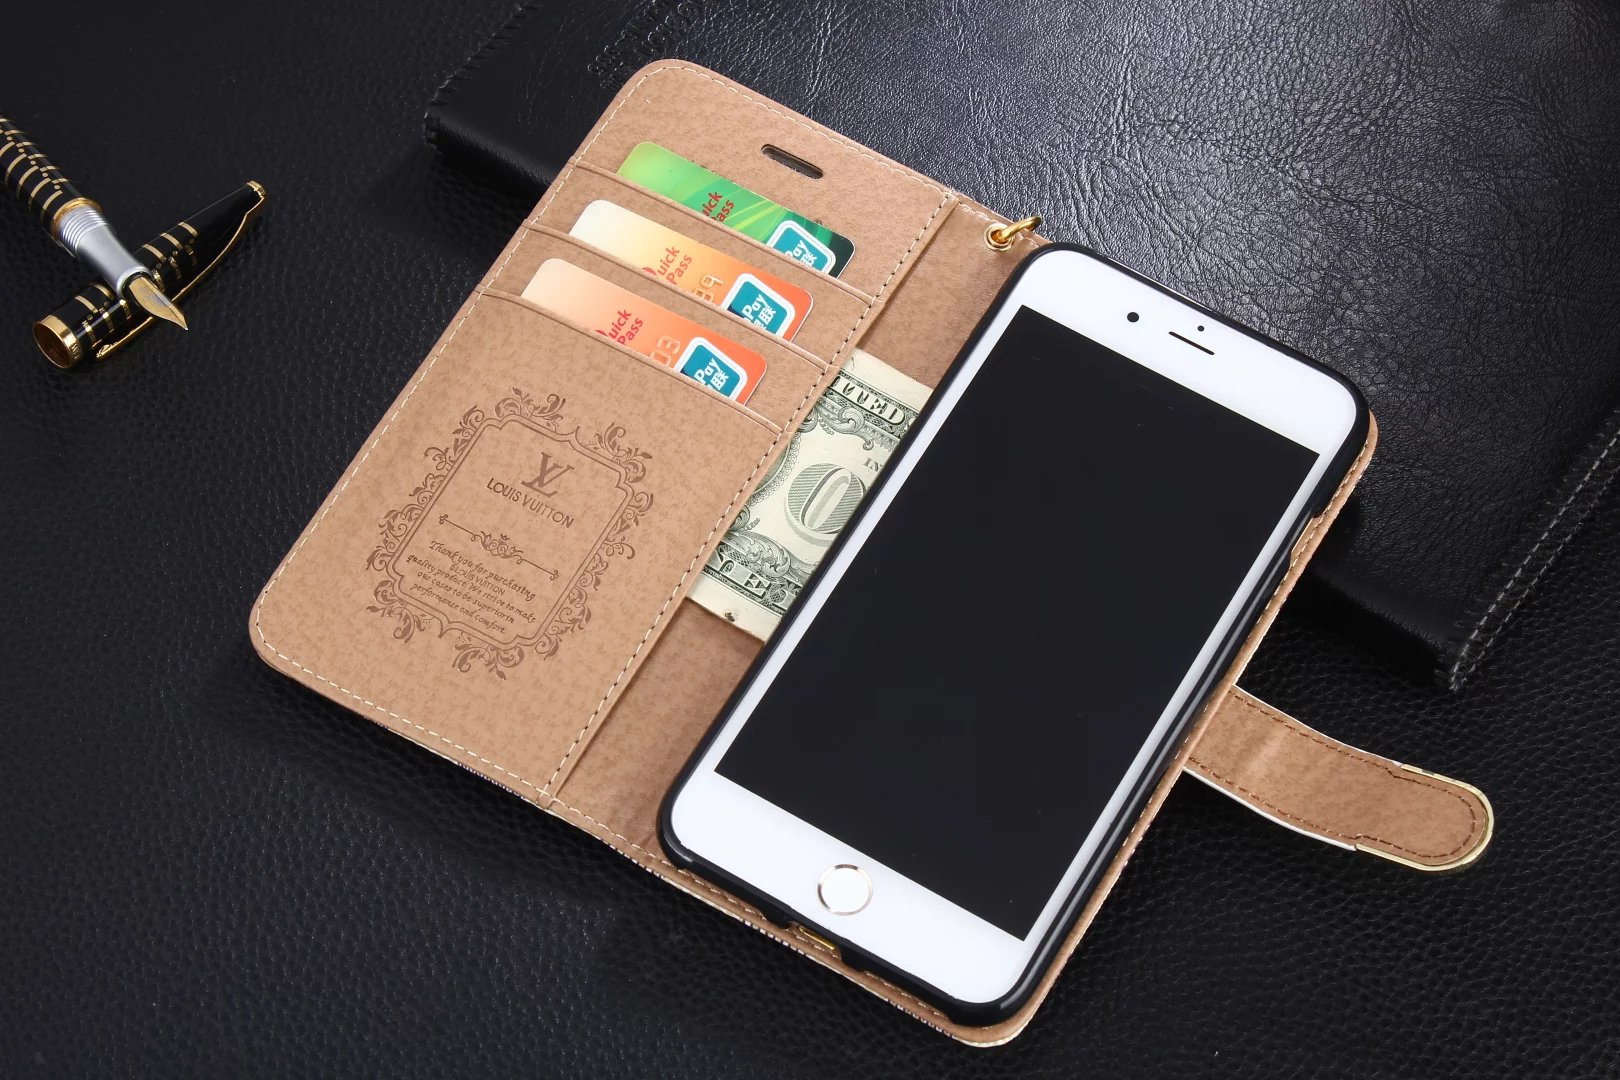 where can i buy an iphone 6s Plus case full cover iphone 6s Plus case fashion iphone6s plus case phone case accessories branded iphone covers make own iphone case iphone 6 apple cases order cell phone cases online phone cover maker